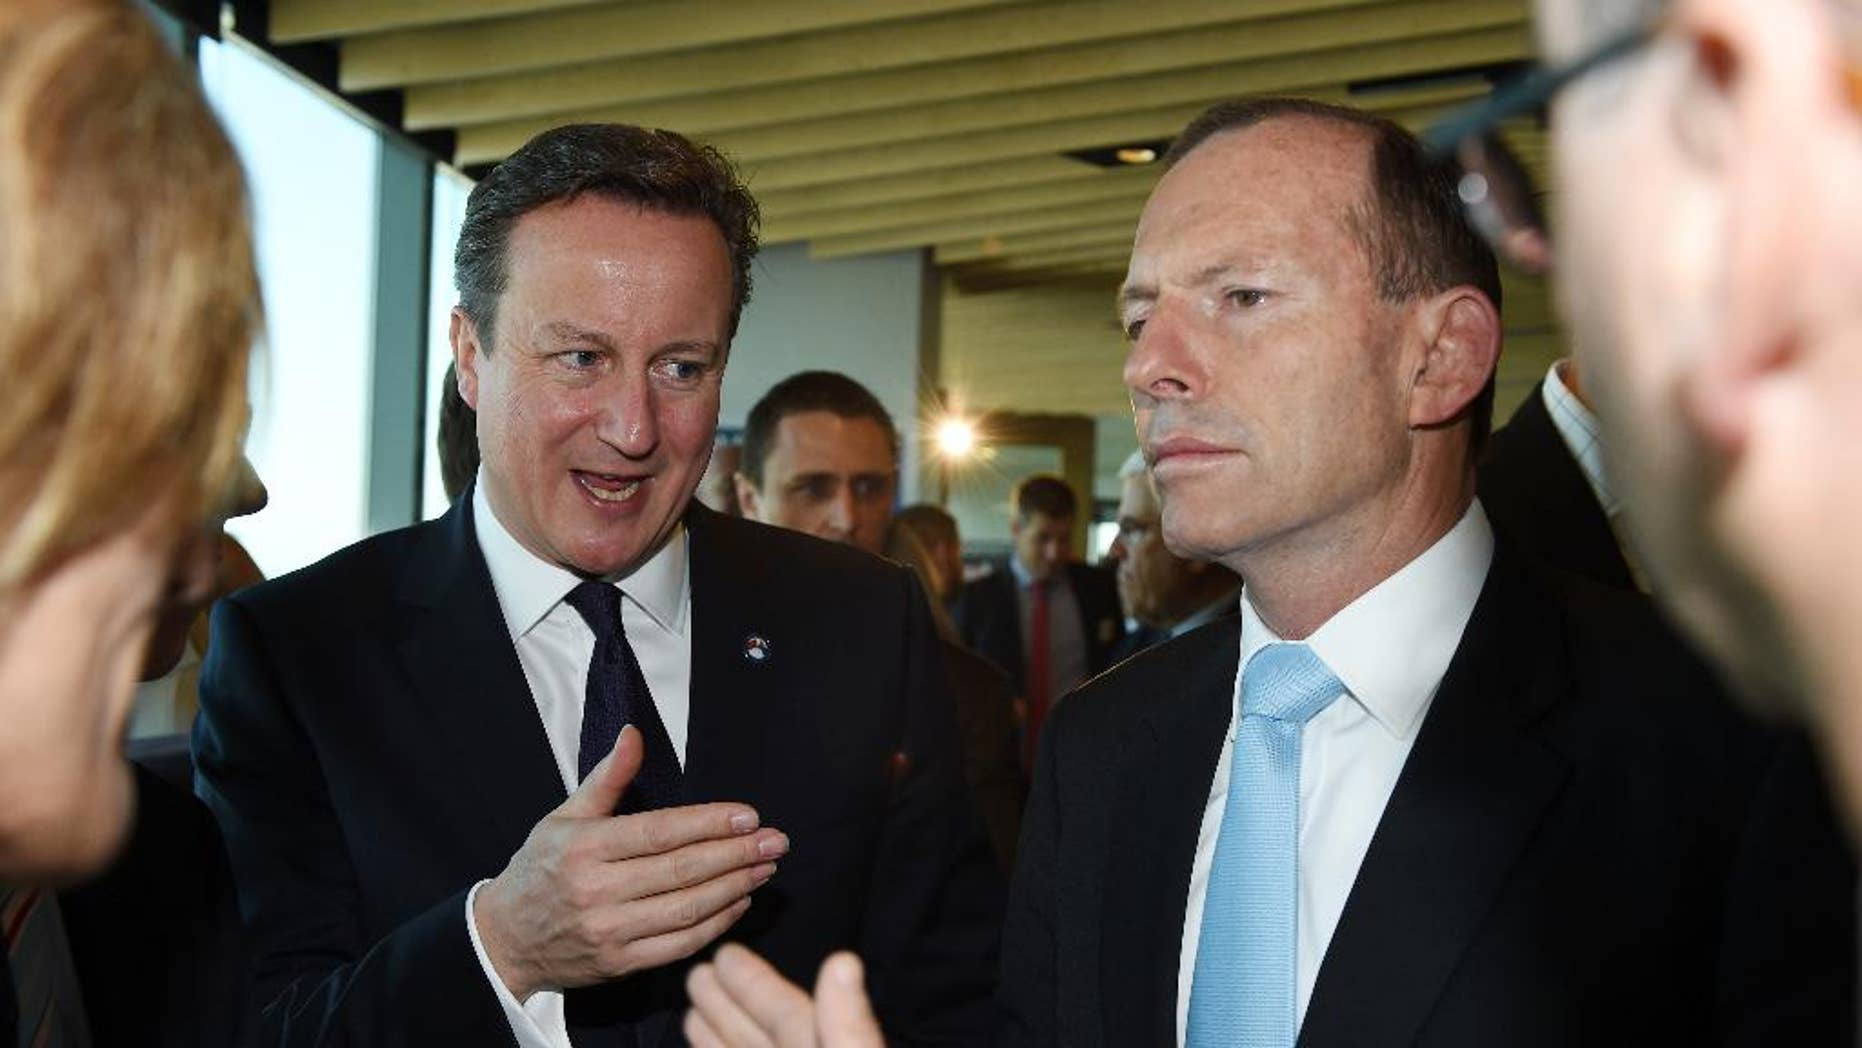 Nov. 14, 2014: British Prime Minister David Cameron, left, gestures as he stands with Australian Prime Minister Tony Abbott as the speak with guests at an infrastructure business breakfast in Sydney, Australia